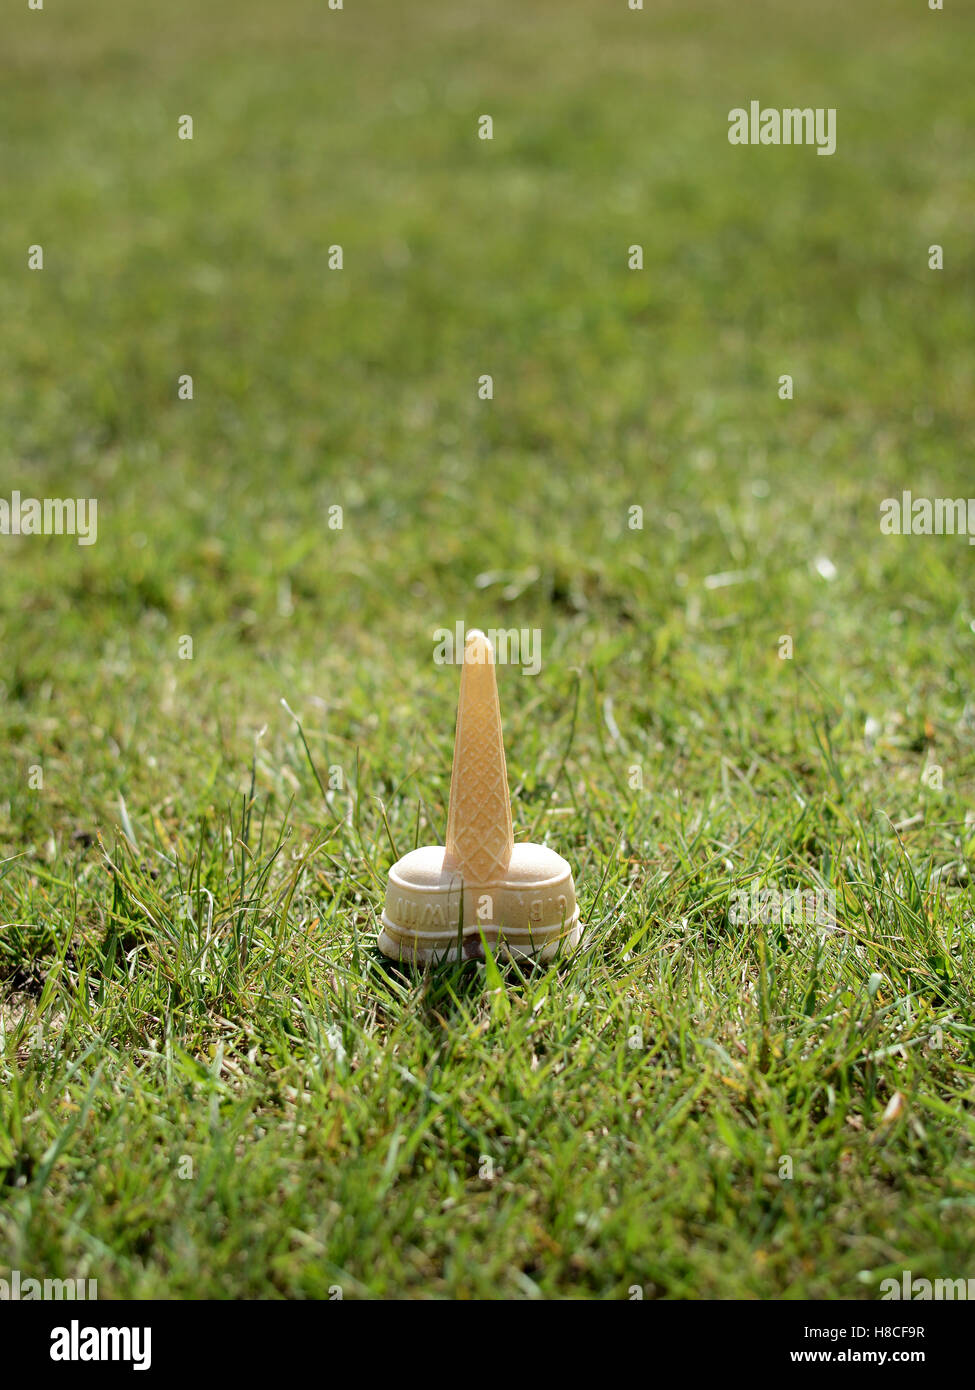 child dropped ice cream cone in grass on a hot summers day - Stock Image